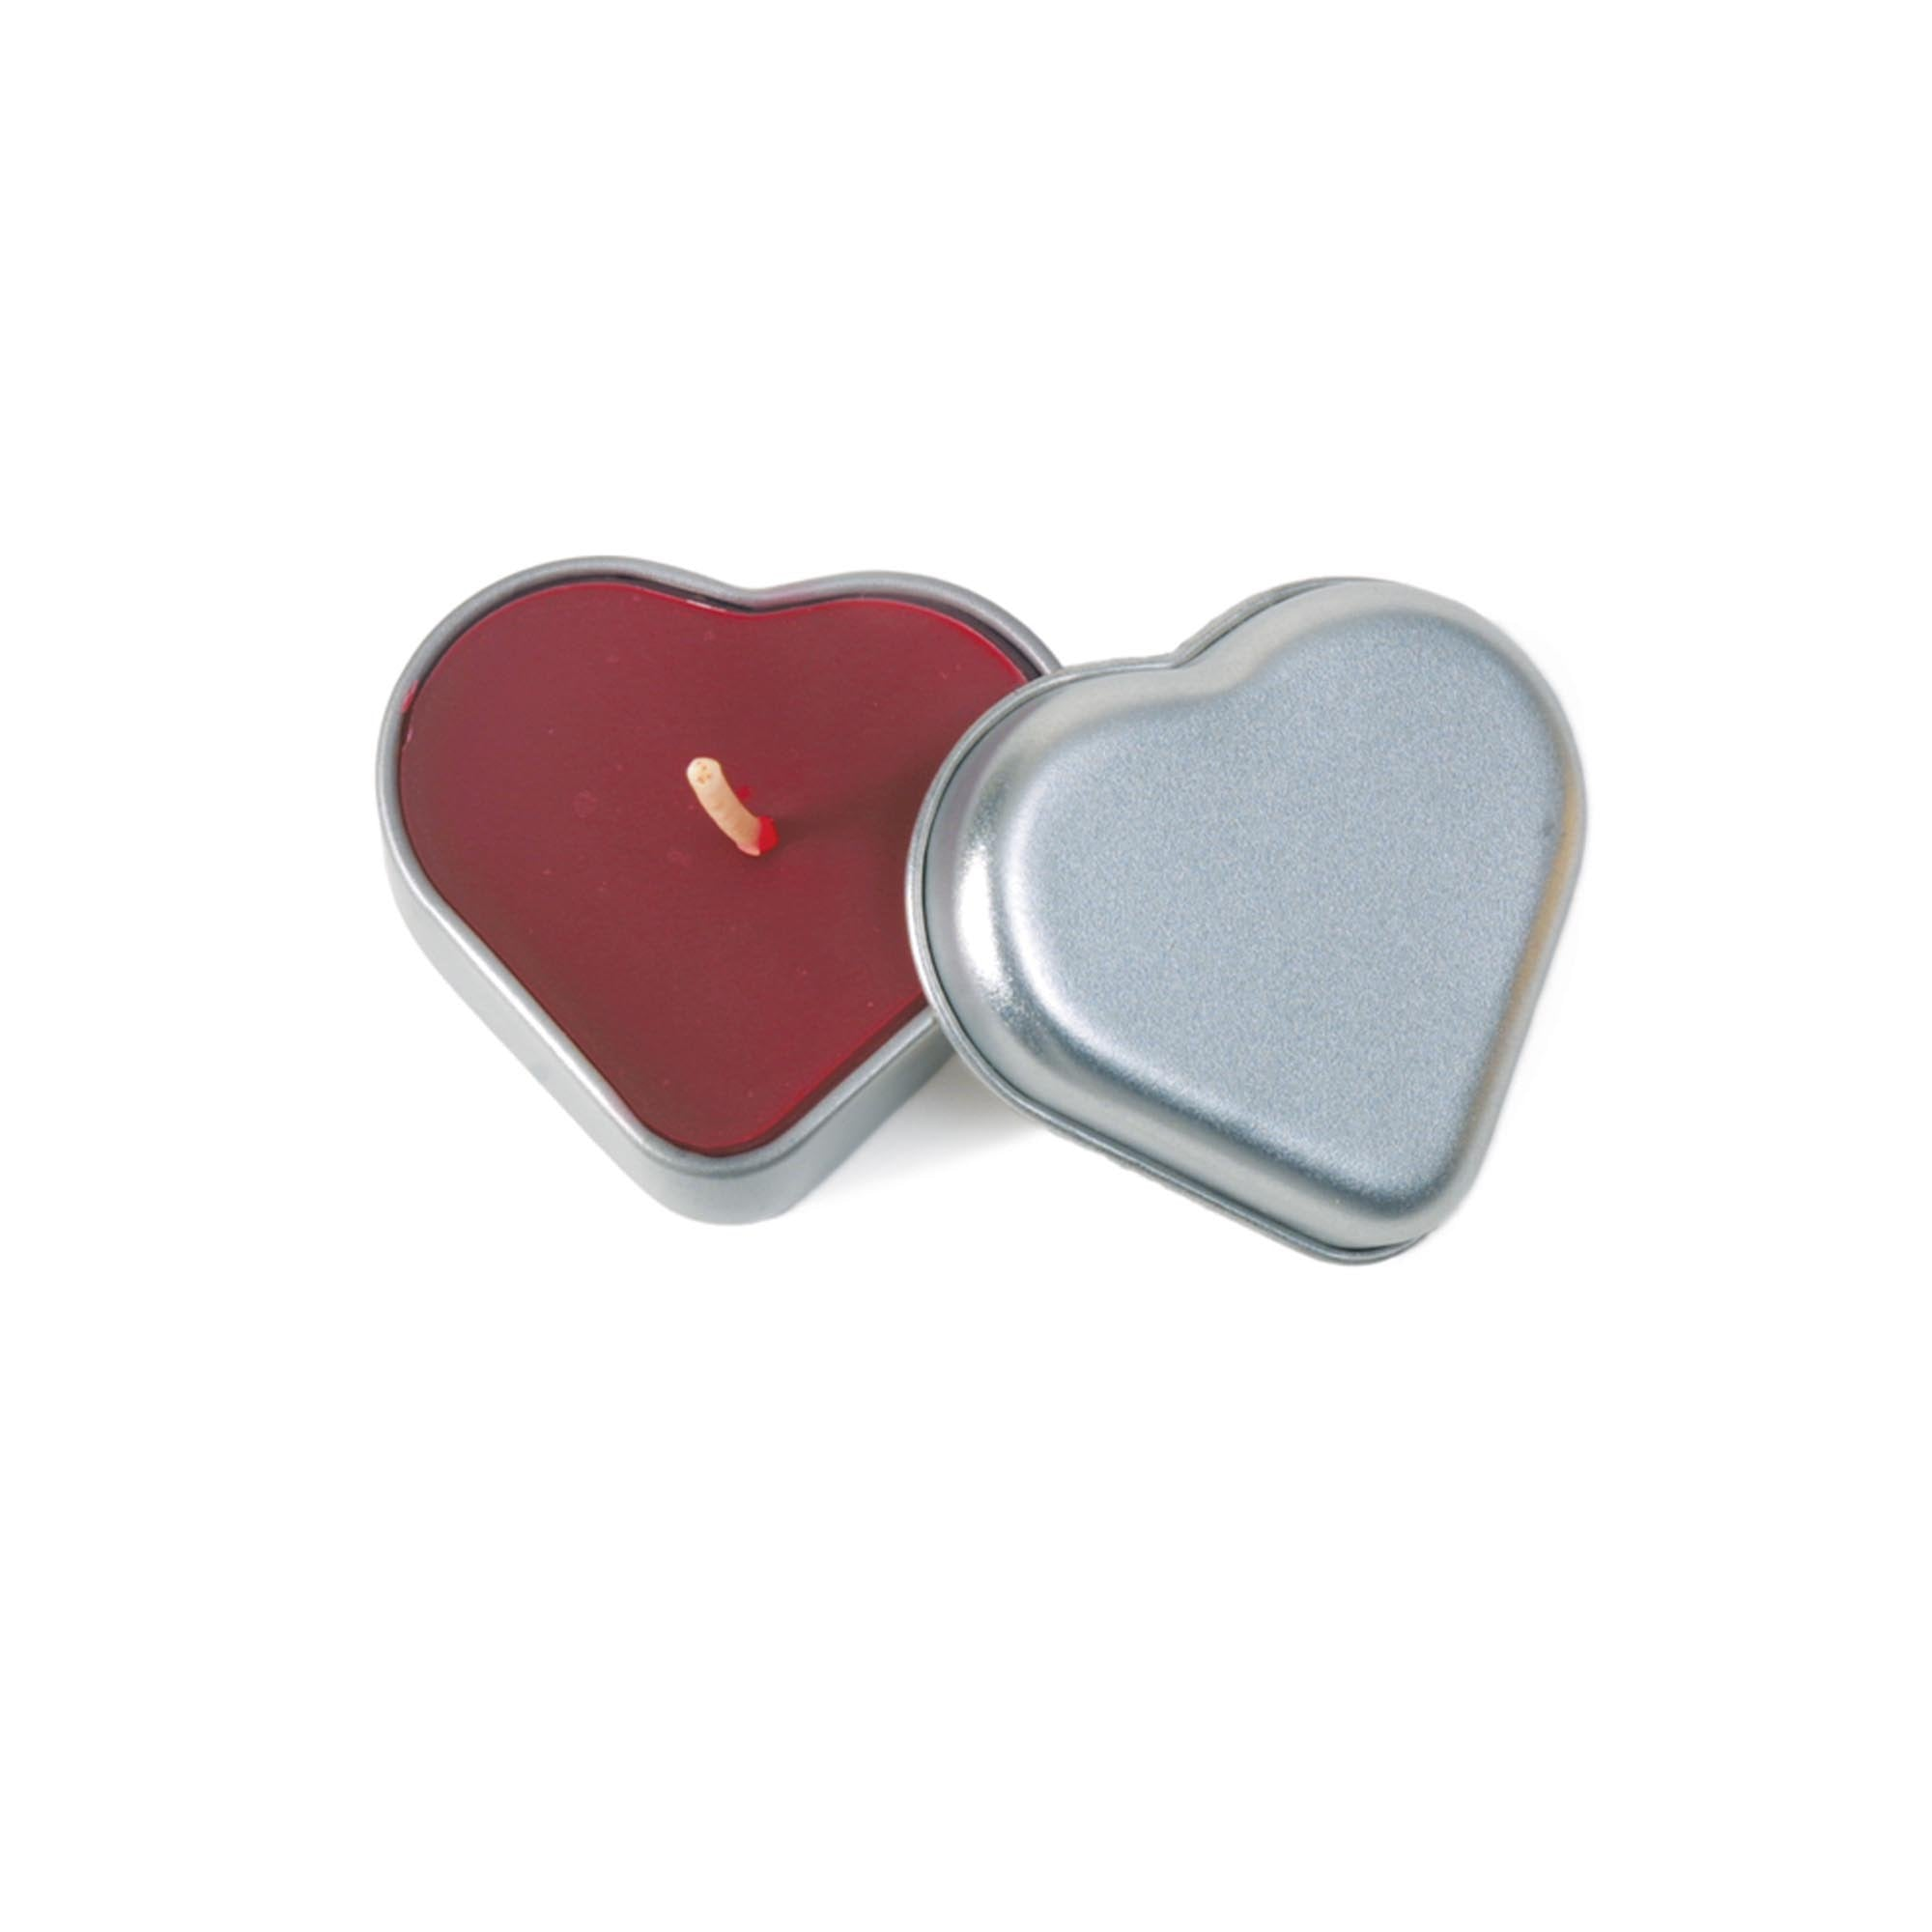 100% Pure Beeswax Heart Candle Tin, heart shaped candle with lid off exposing ruby red wax, and white cotton wick